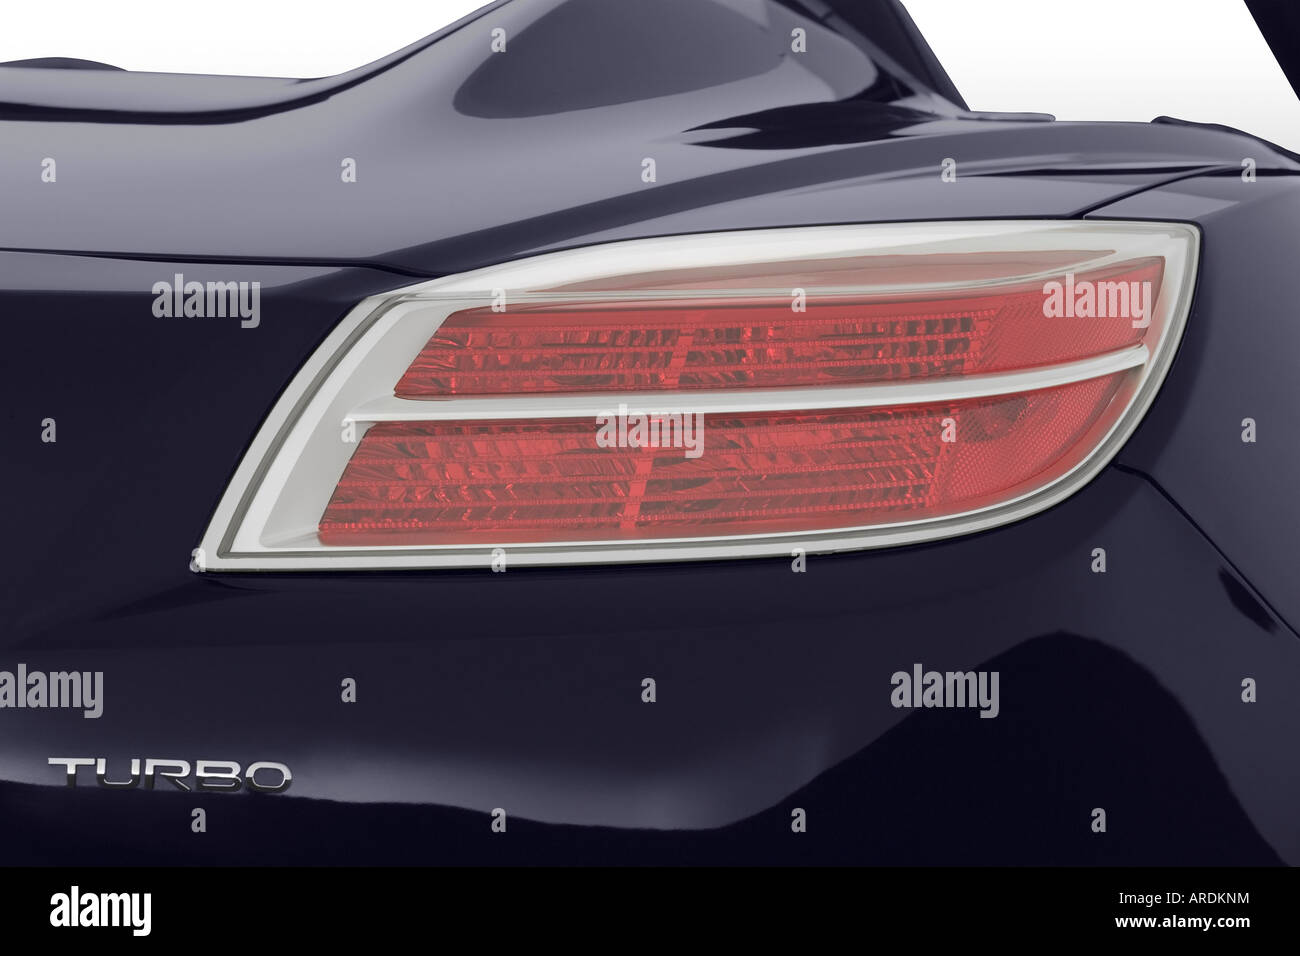 hight resolution of saturn red line in blue tail light stock image jpg 1300x956 saturn sky tail light replacement